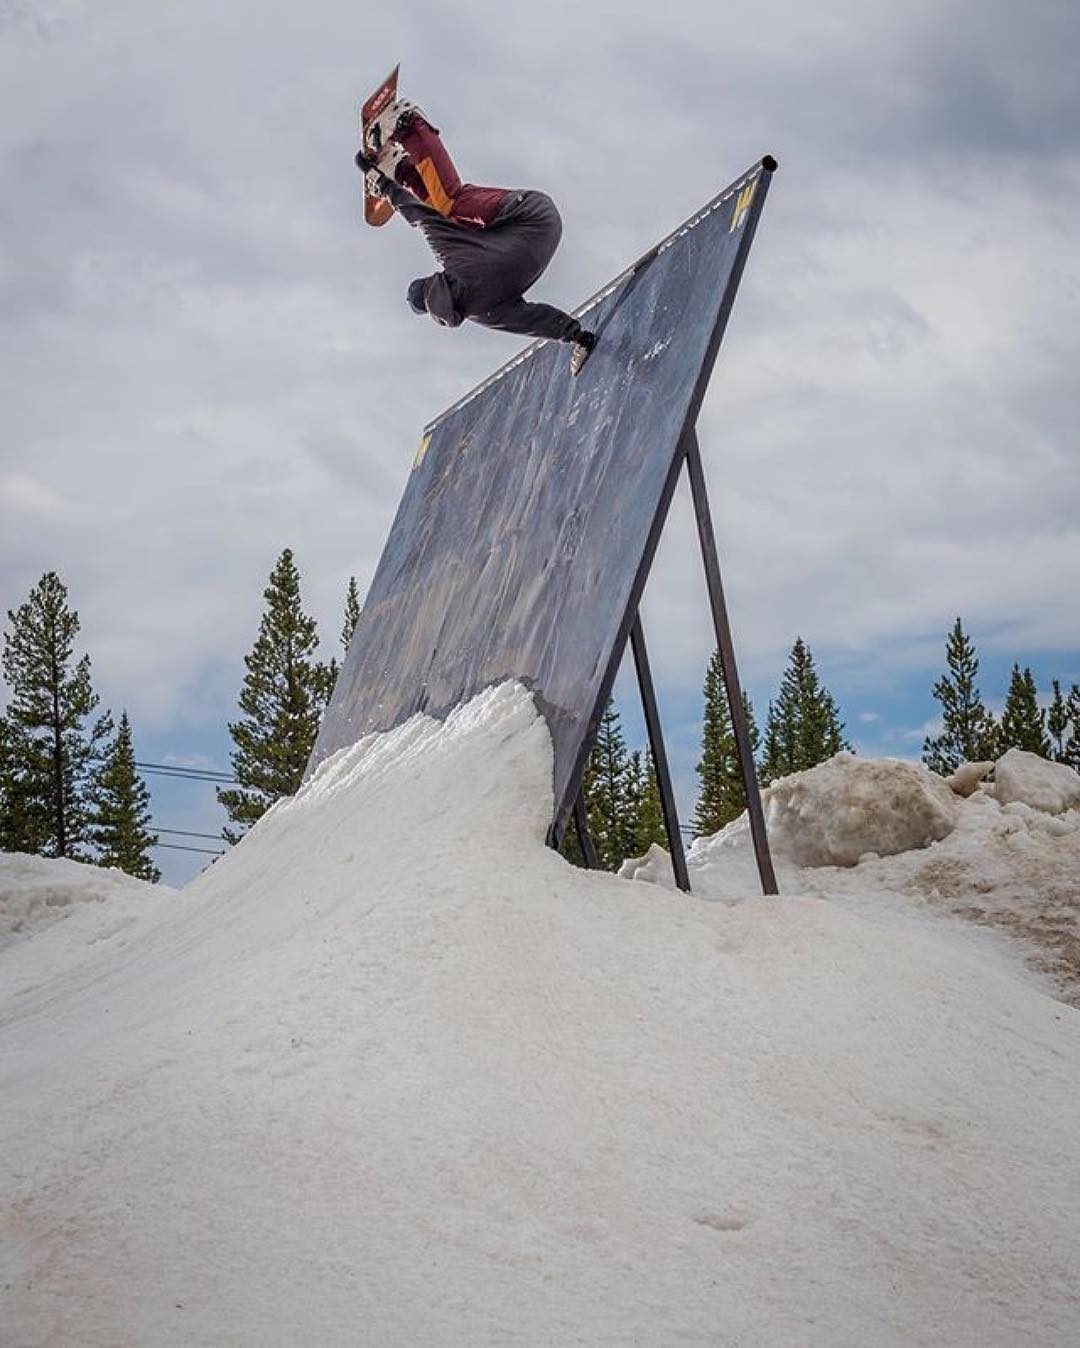 #Repost @mikeegray ・・・ Earlier this summer @woodwardcopper  Stoked to go back. Thanks @morrisonhsieh for making it possible and @chadotterstrom for the